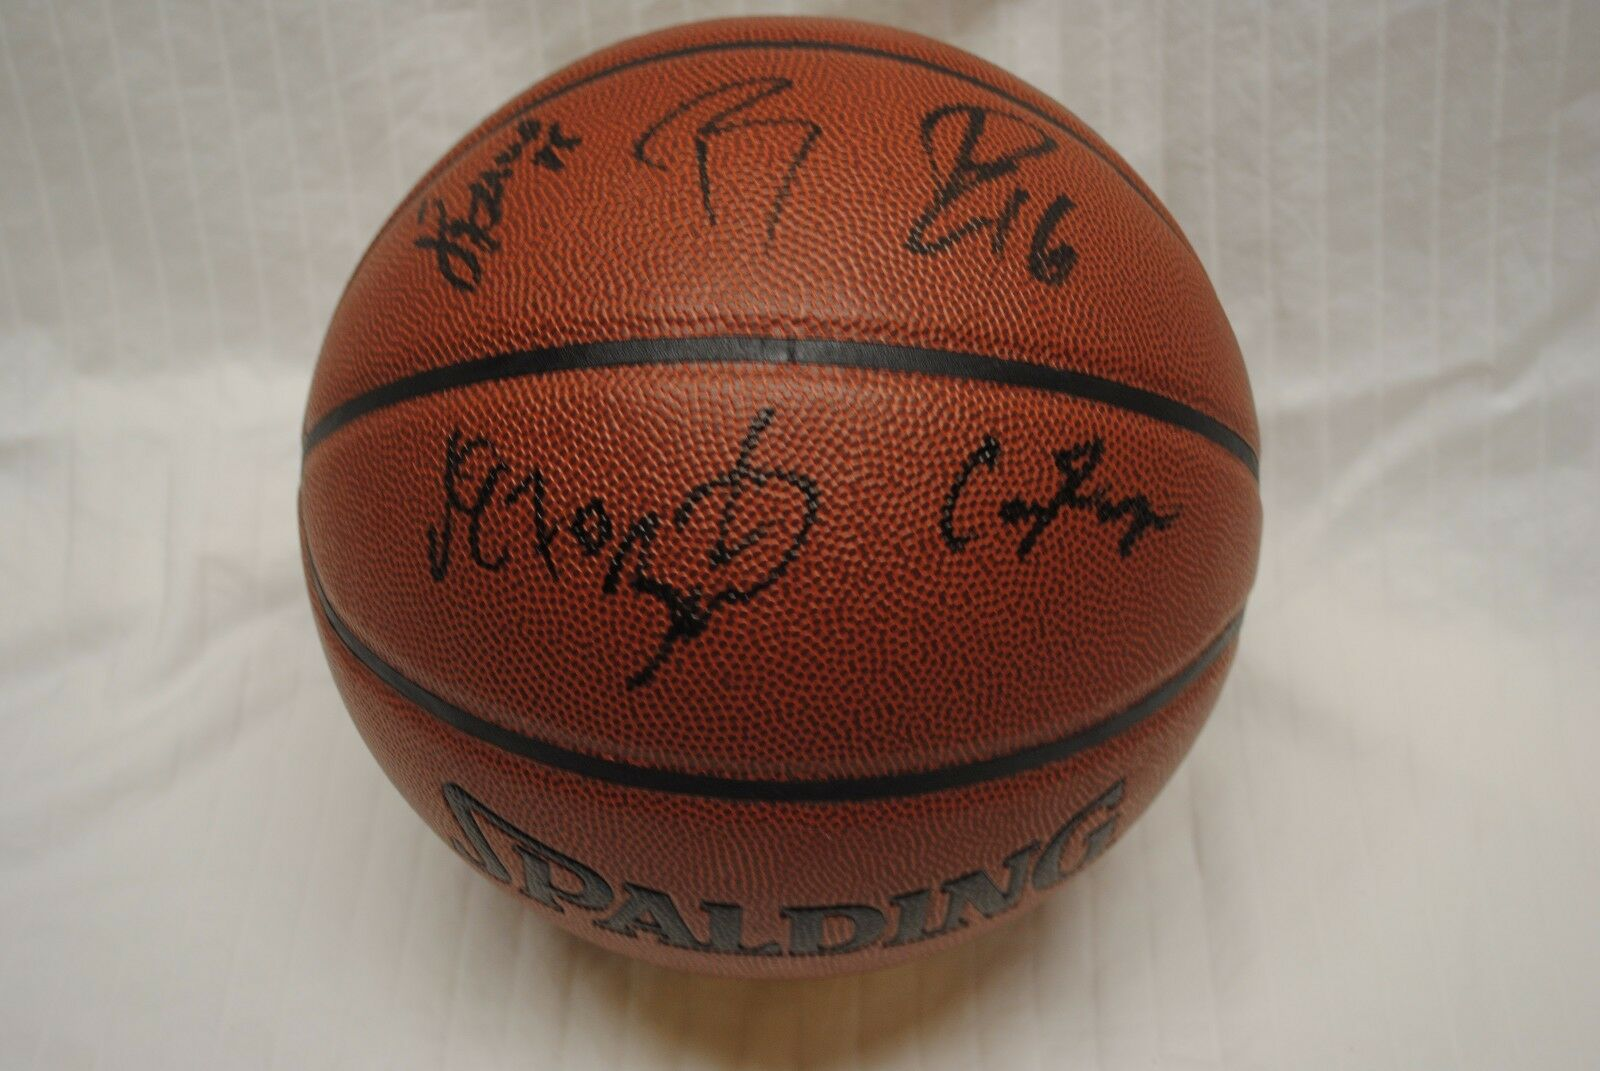 Chicago Bulls 2016-2017 Team Signed Basketball NBA Jimmy Butler Derrick Rose DM6